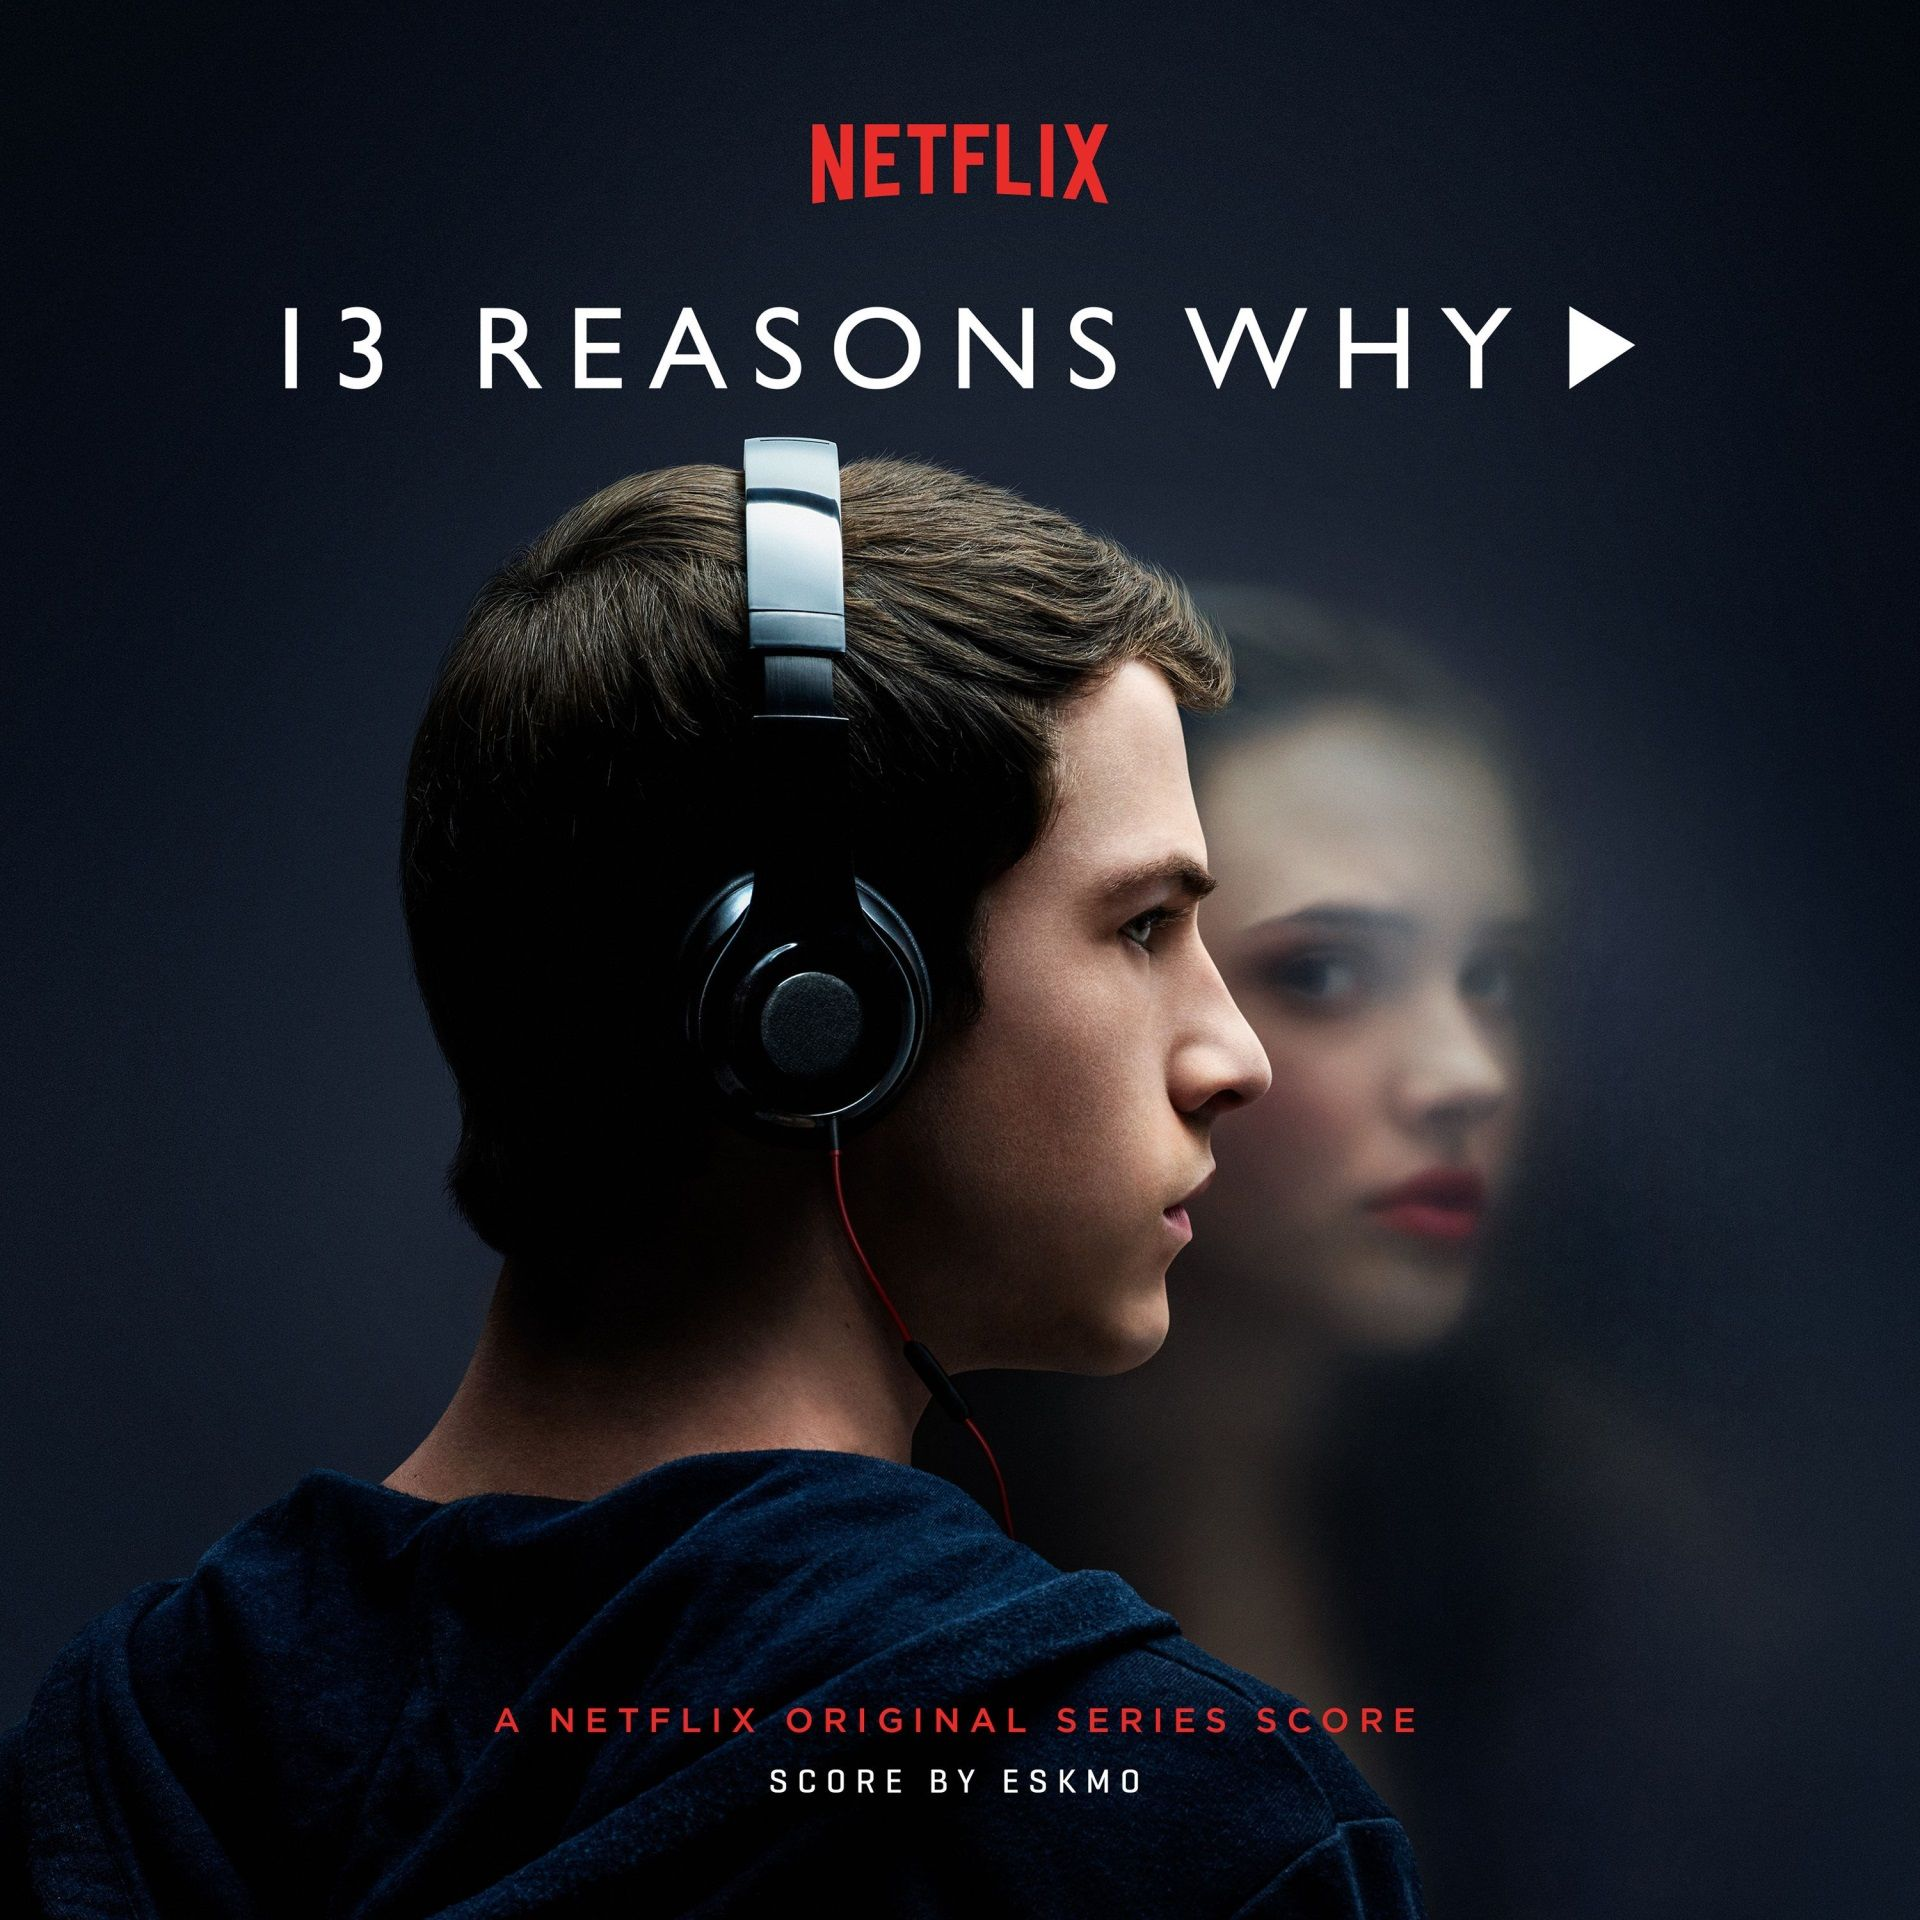 1920x1920 13 Reasons Why Hd Wallpaper Widescreen With Images